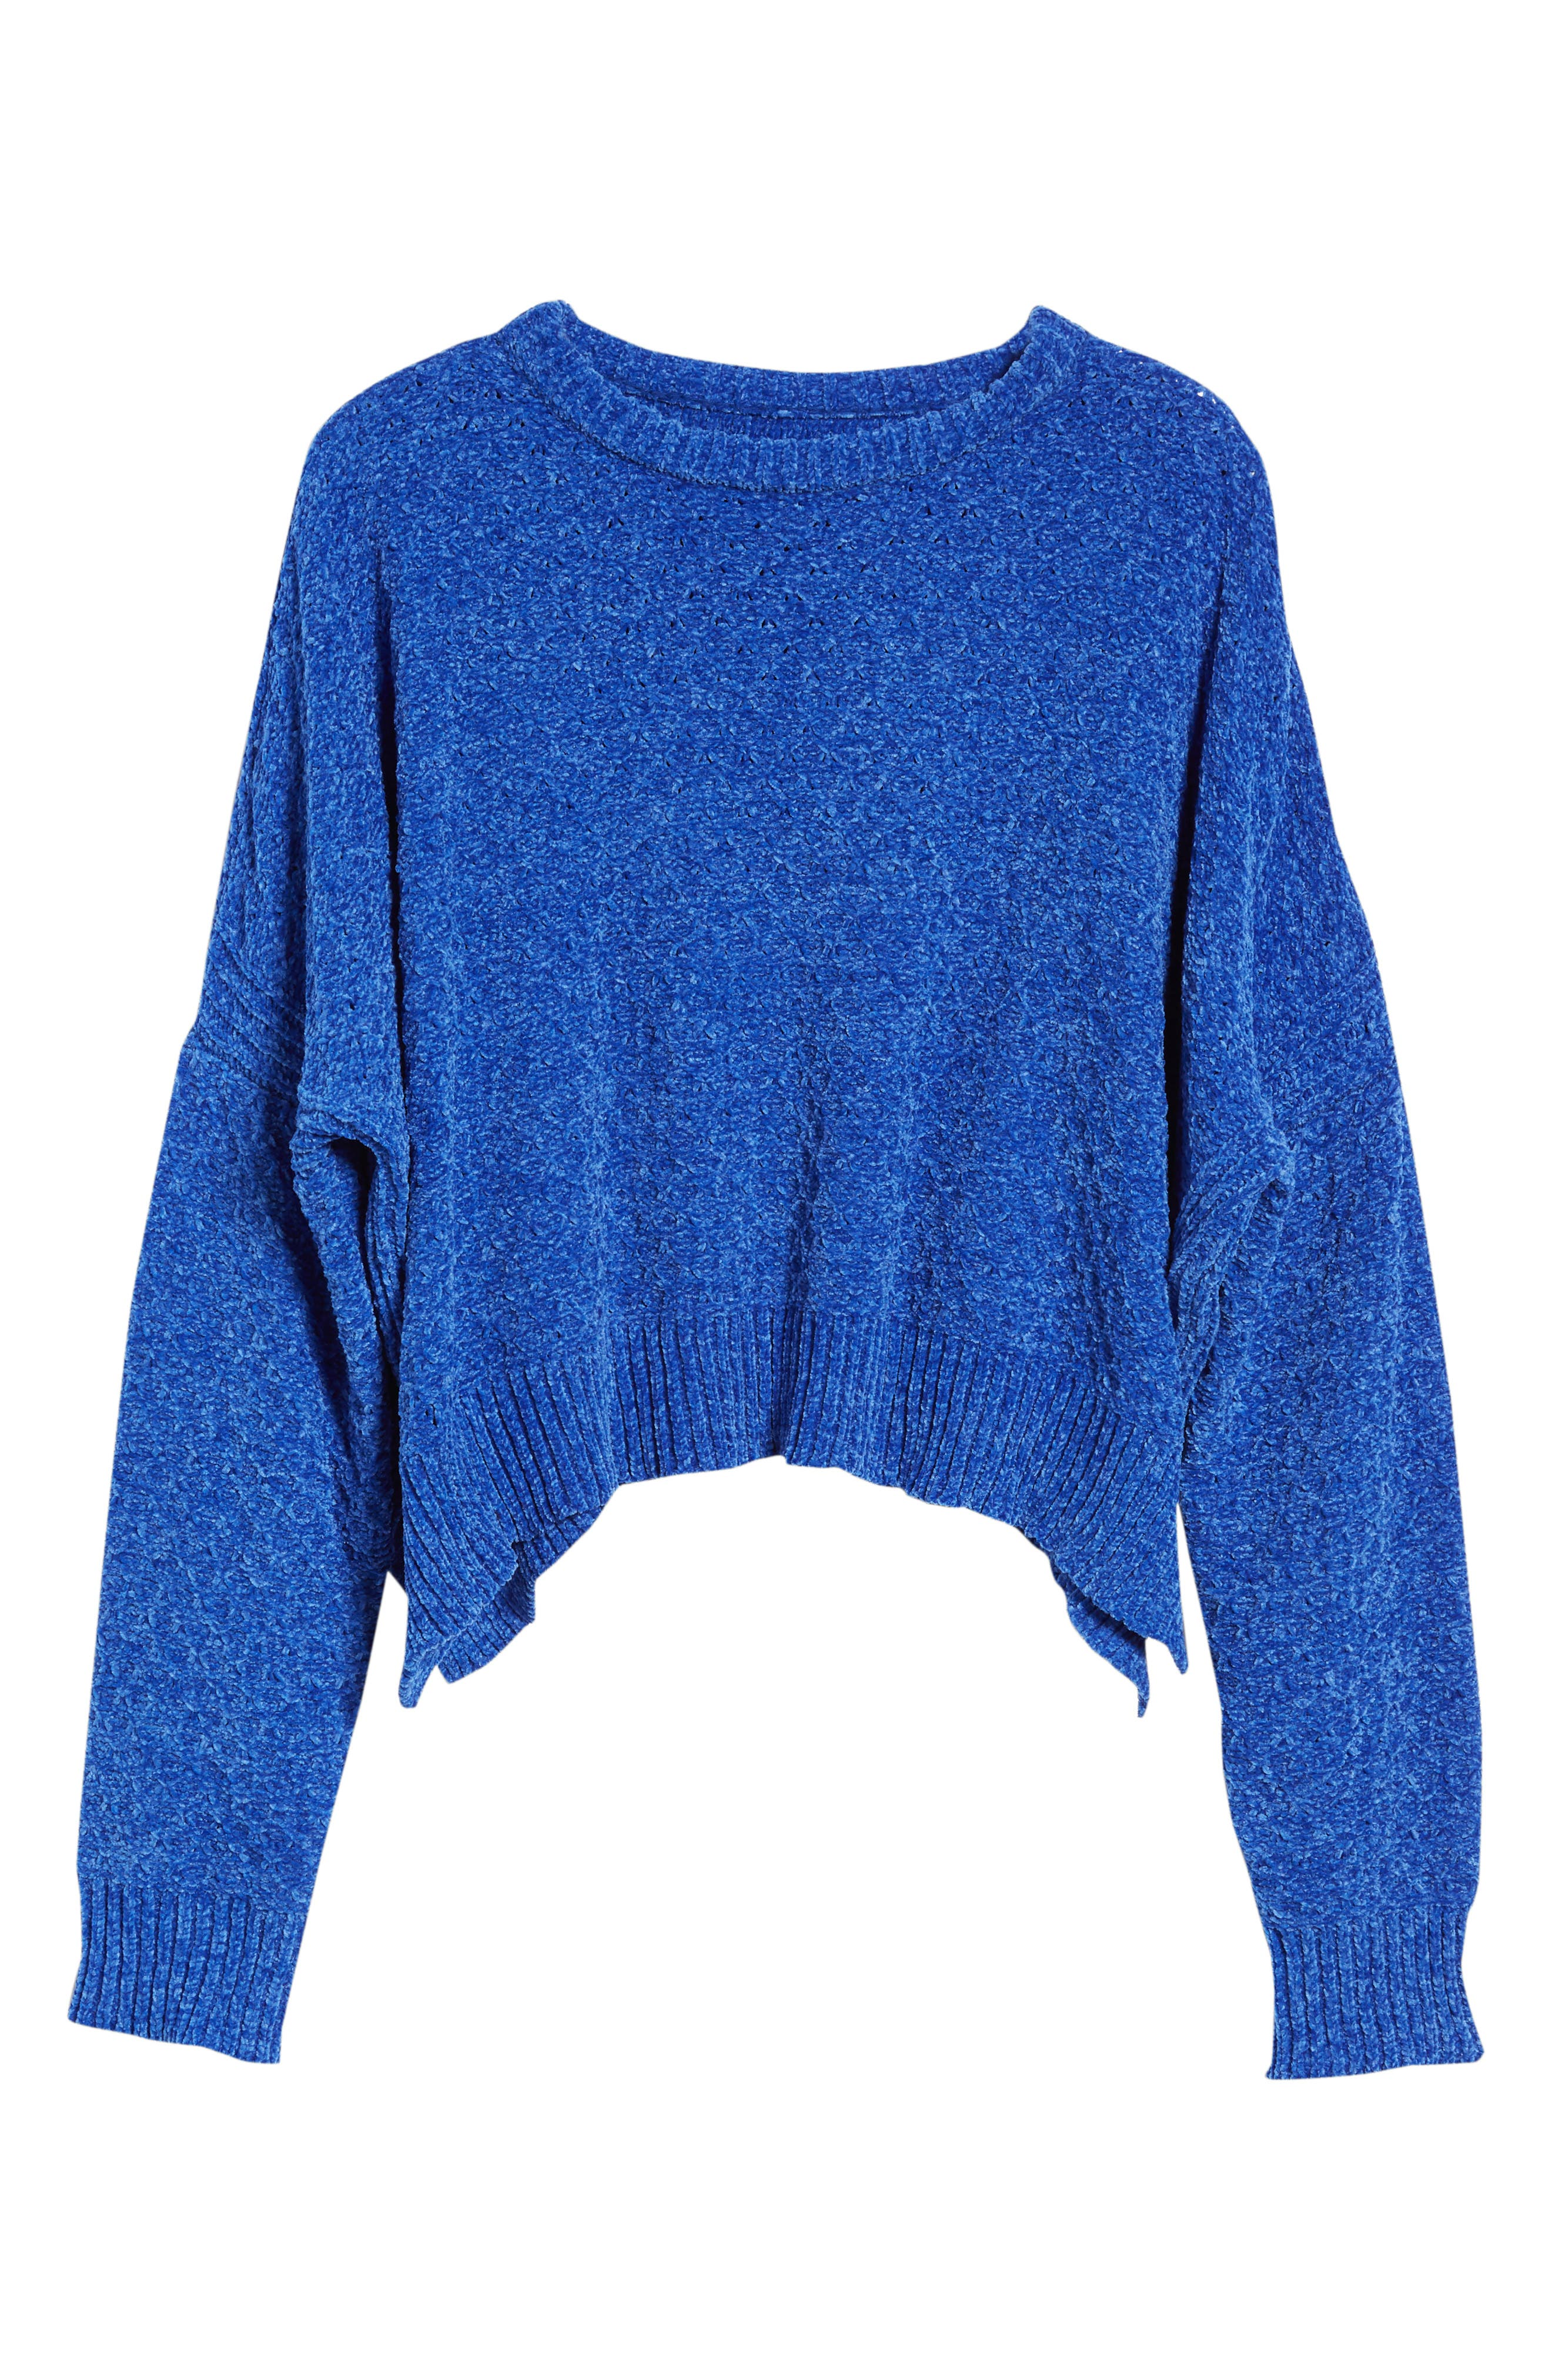 Chenille Sweater,                             Alternate thumbnail 7, color,                             400